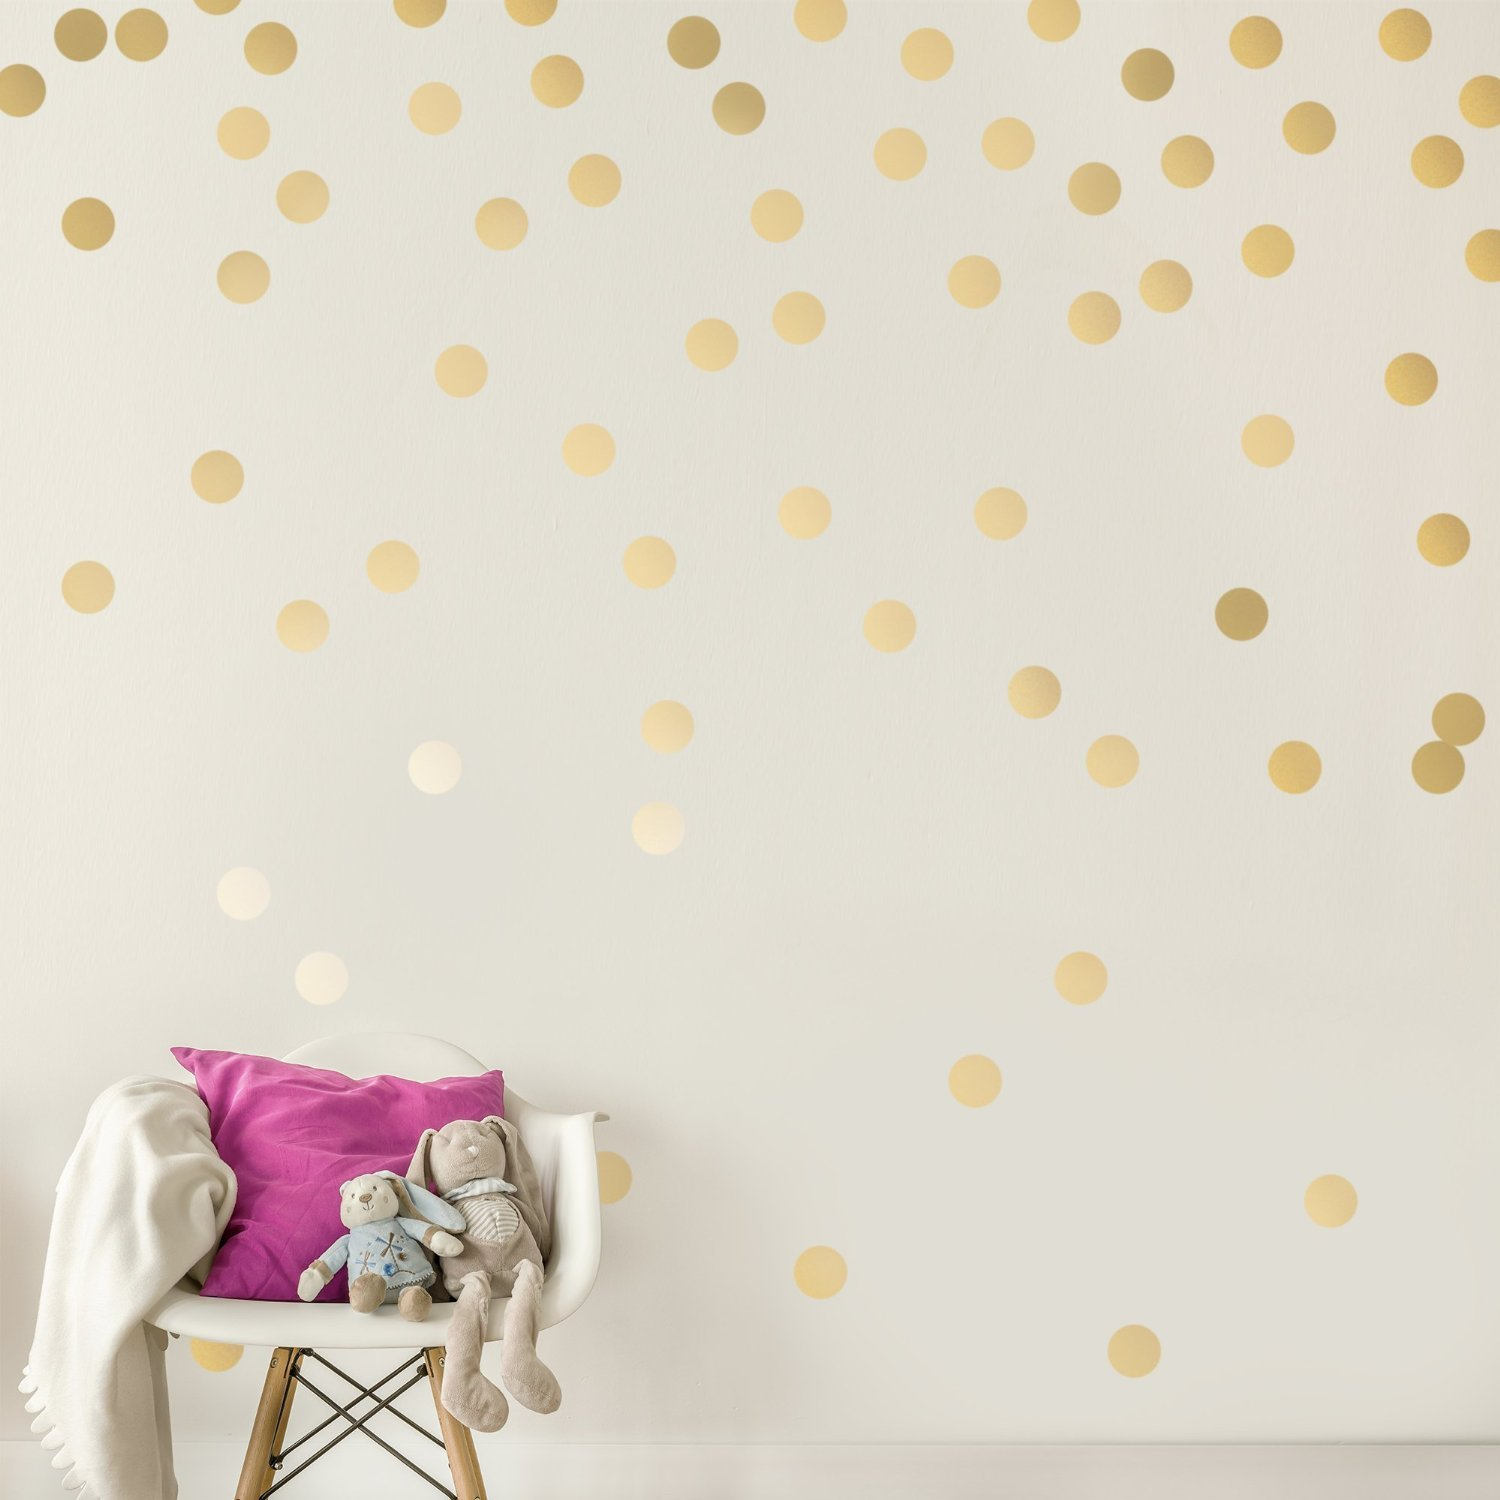 amazon com easy peel stick gold wall decal dots 200 decals amazon com easy peel stick gold wall decal dots 200 decals safe on walls paint removable metallic vinyl polka dot decor round circle art glitter